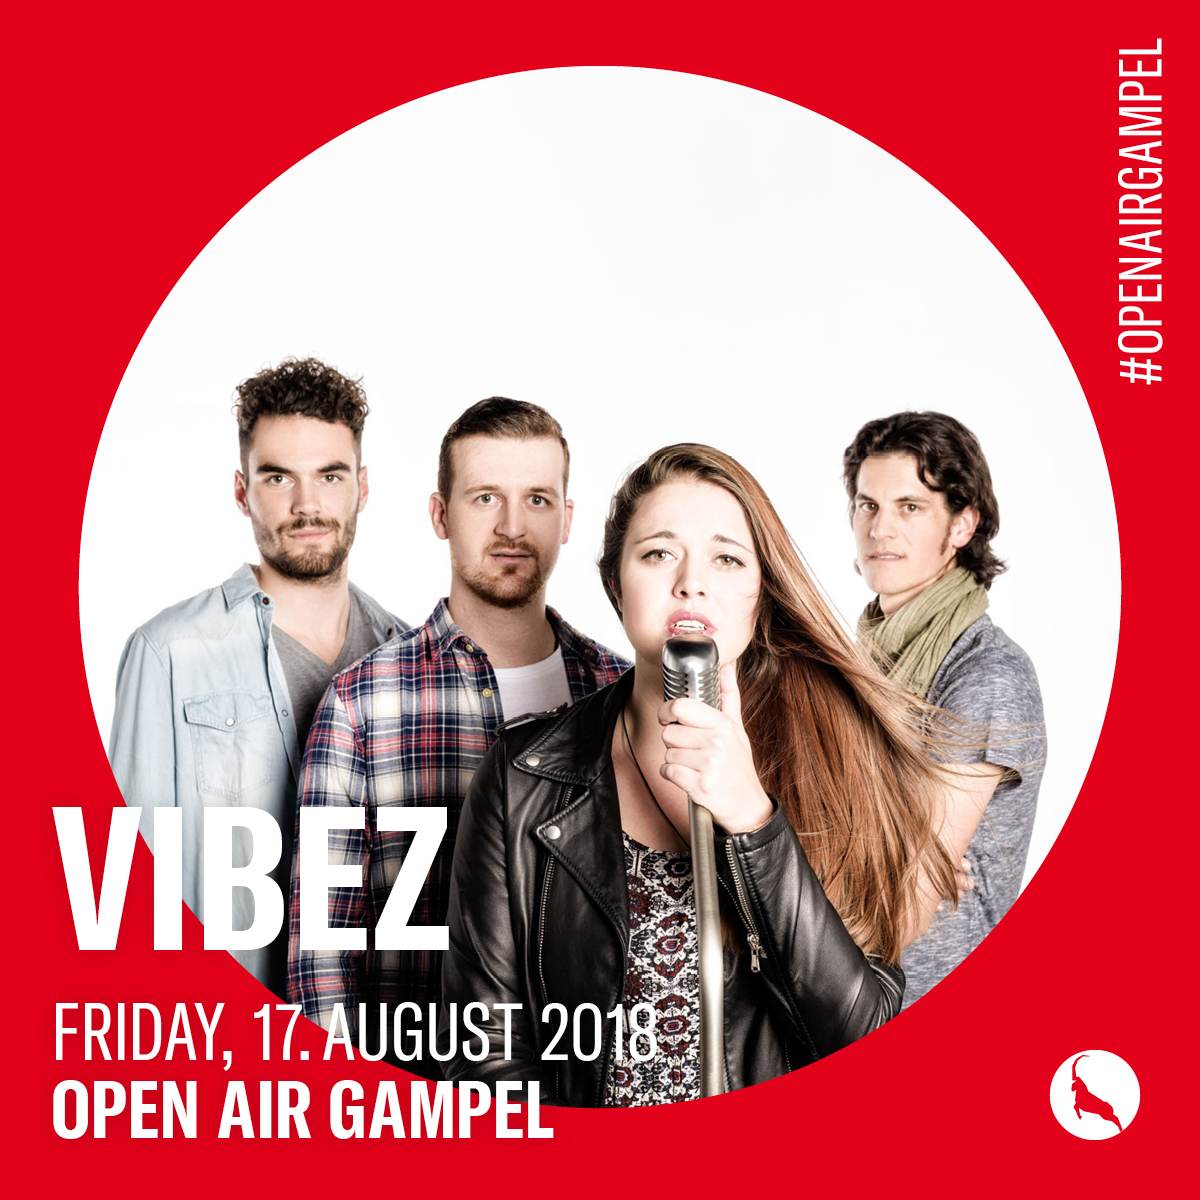 VIBEZ am Open Air Gampel